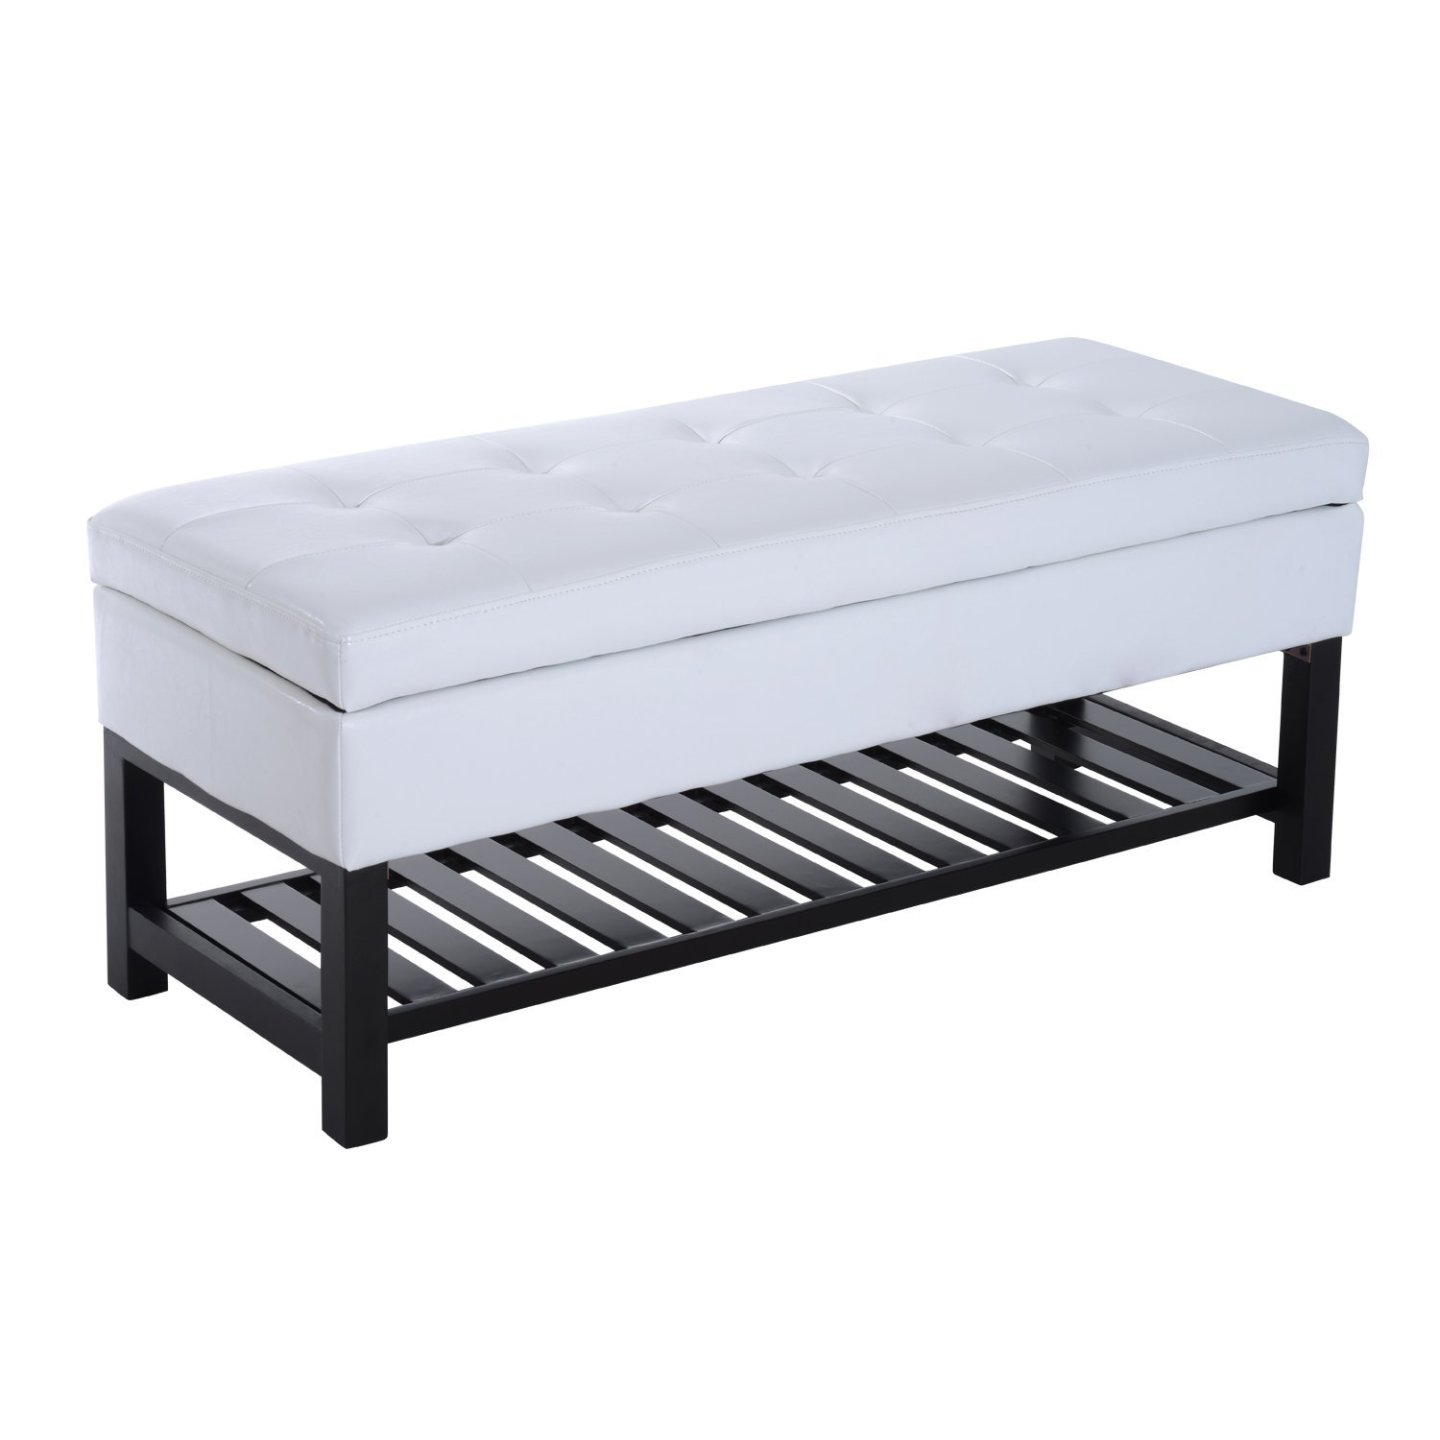 HomCom 44? PU Leather Tufted Shoe Rack Ottoman Storage Bench - White